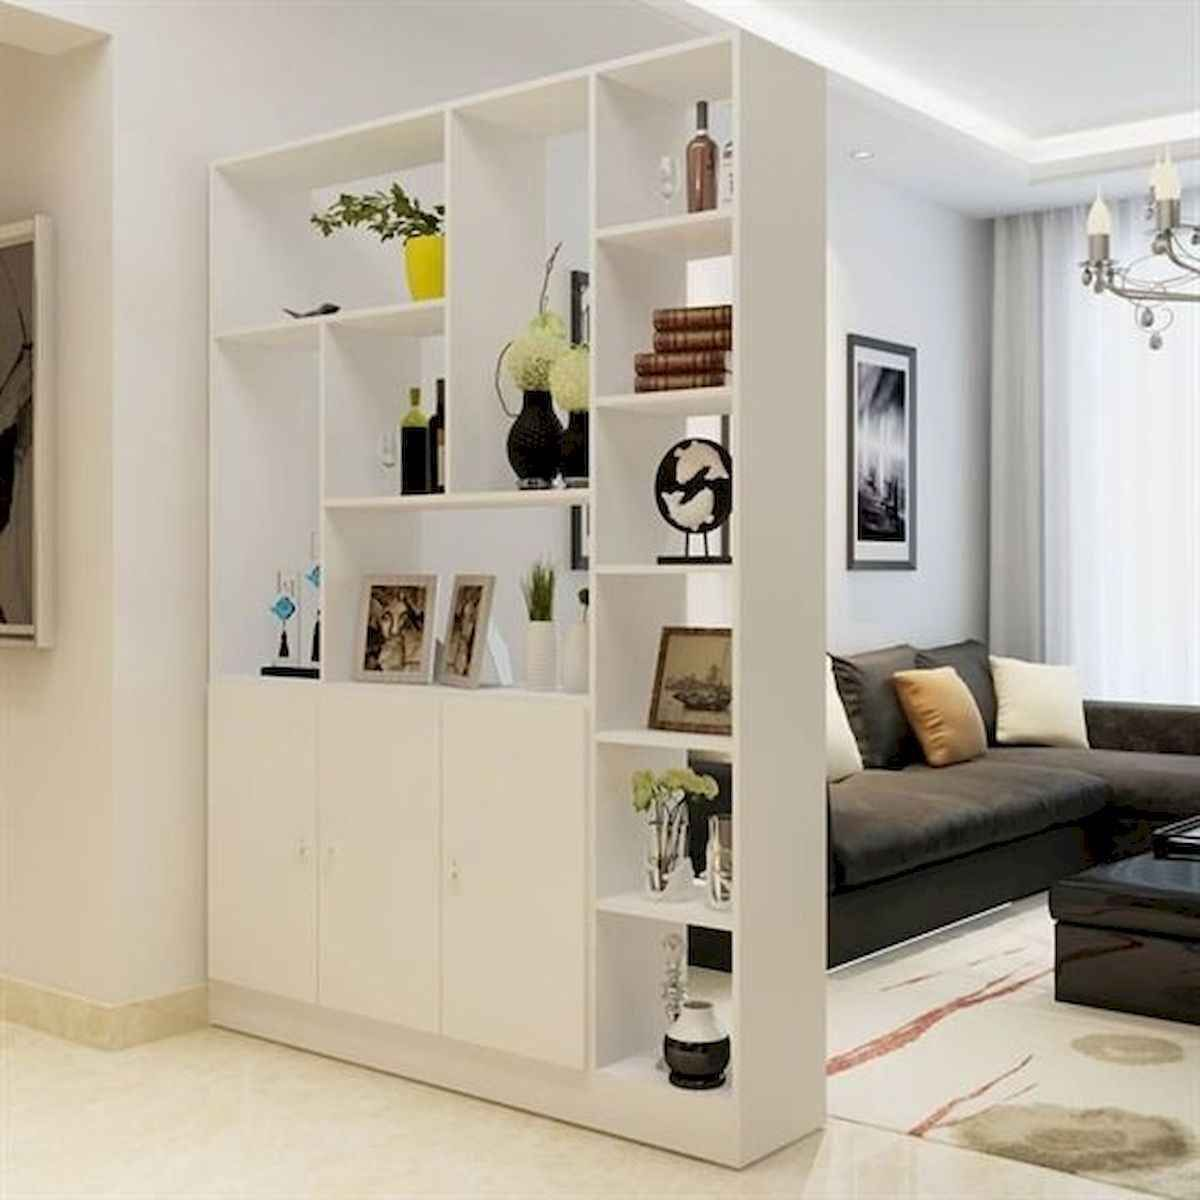 60 Favorite Studio Apartment Storage Decor Ideas And Remodel 7